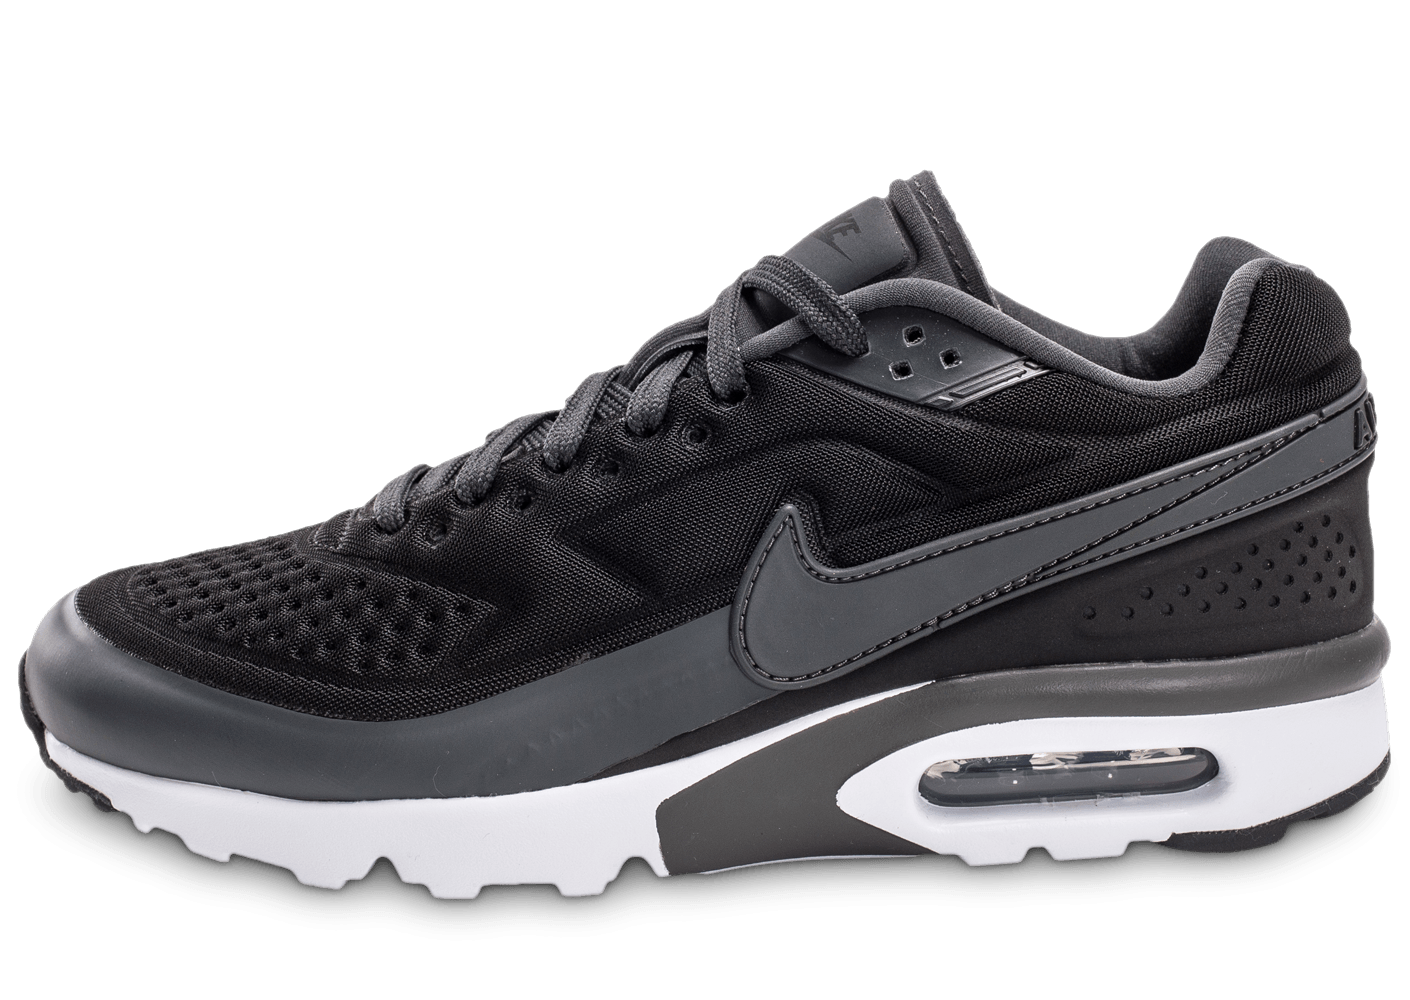 official photos 8093a 7aa3a ... chaussures nike air max bw ultra noir anthracite vue exterieure .